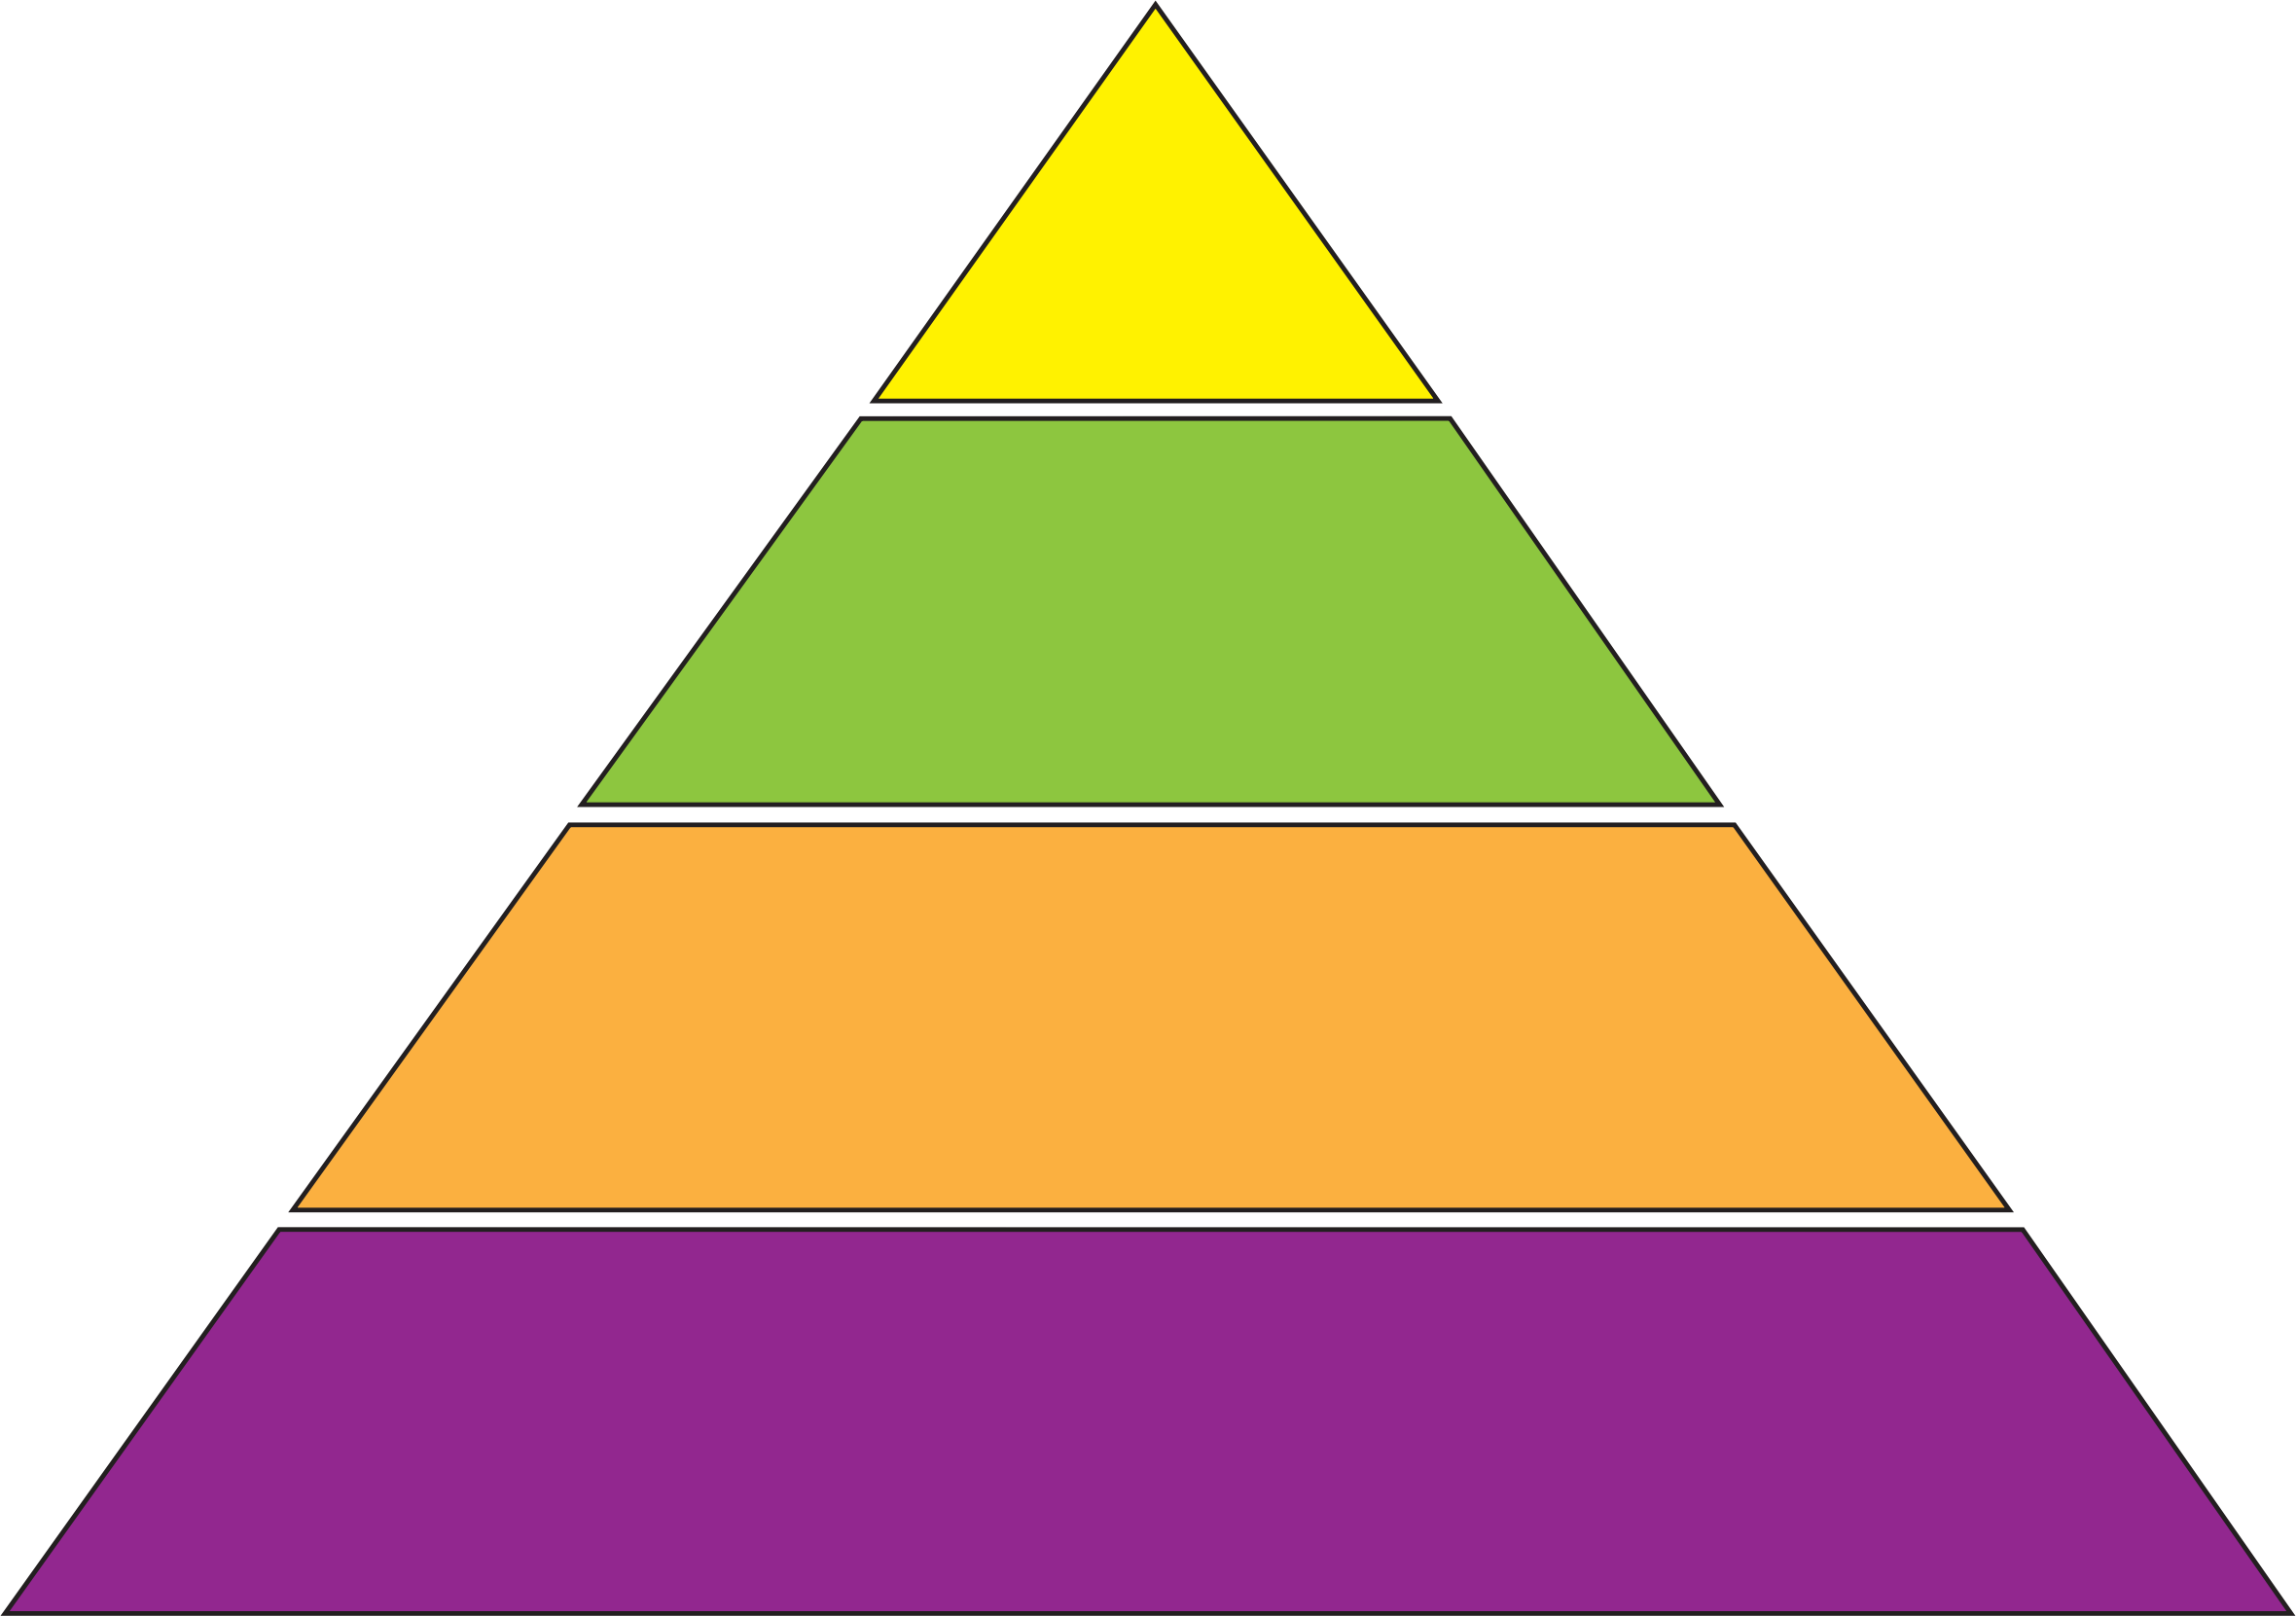 Pyramid cliparts - Free PNG Pyramid